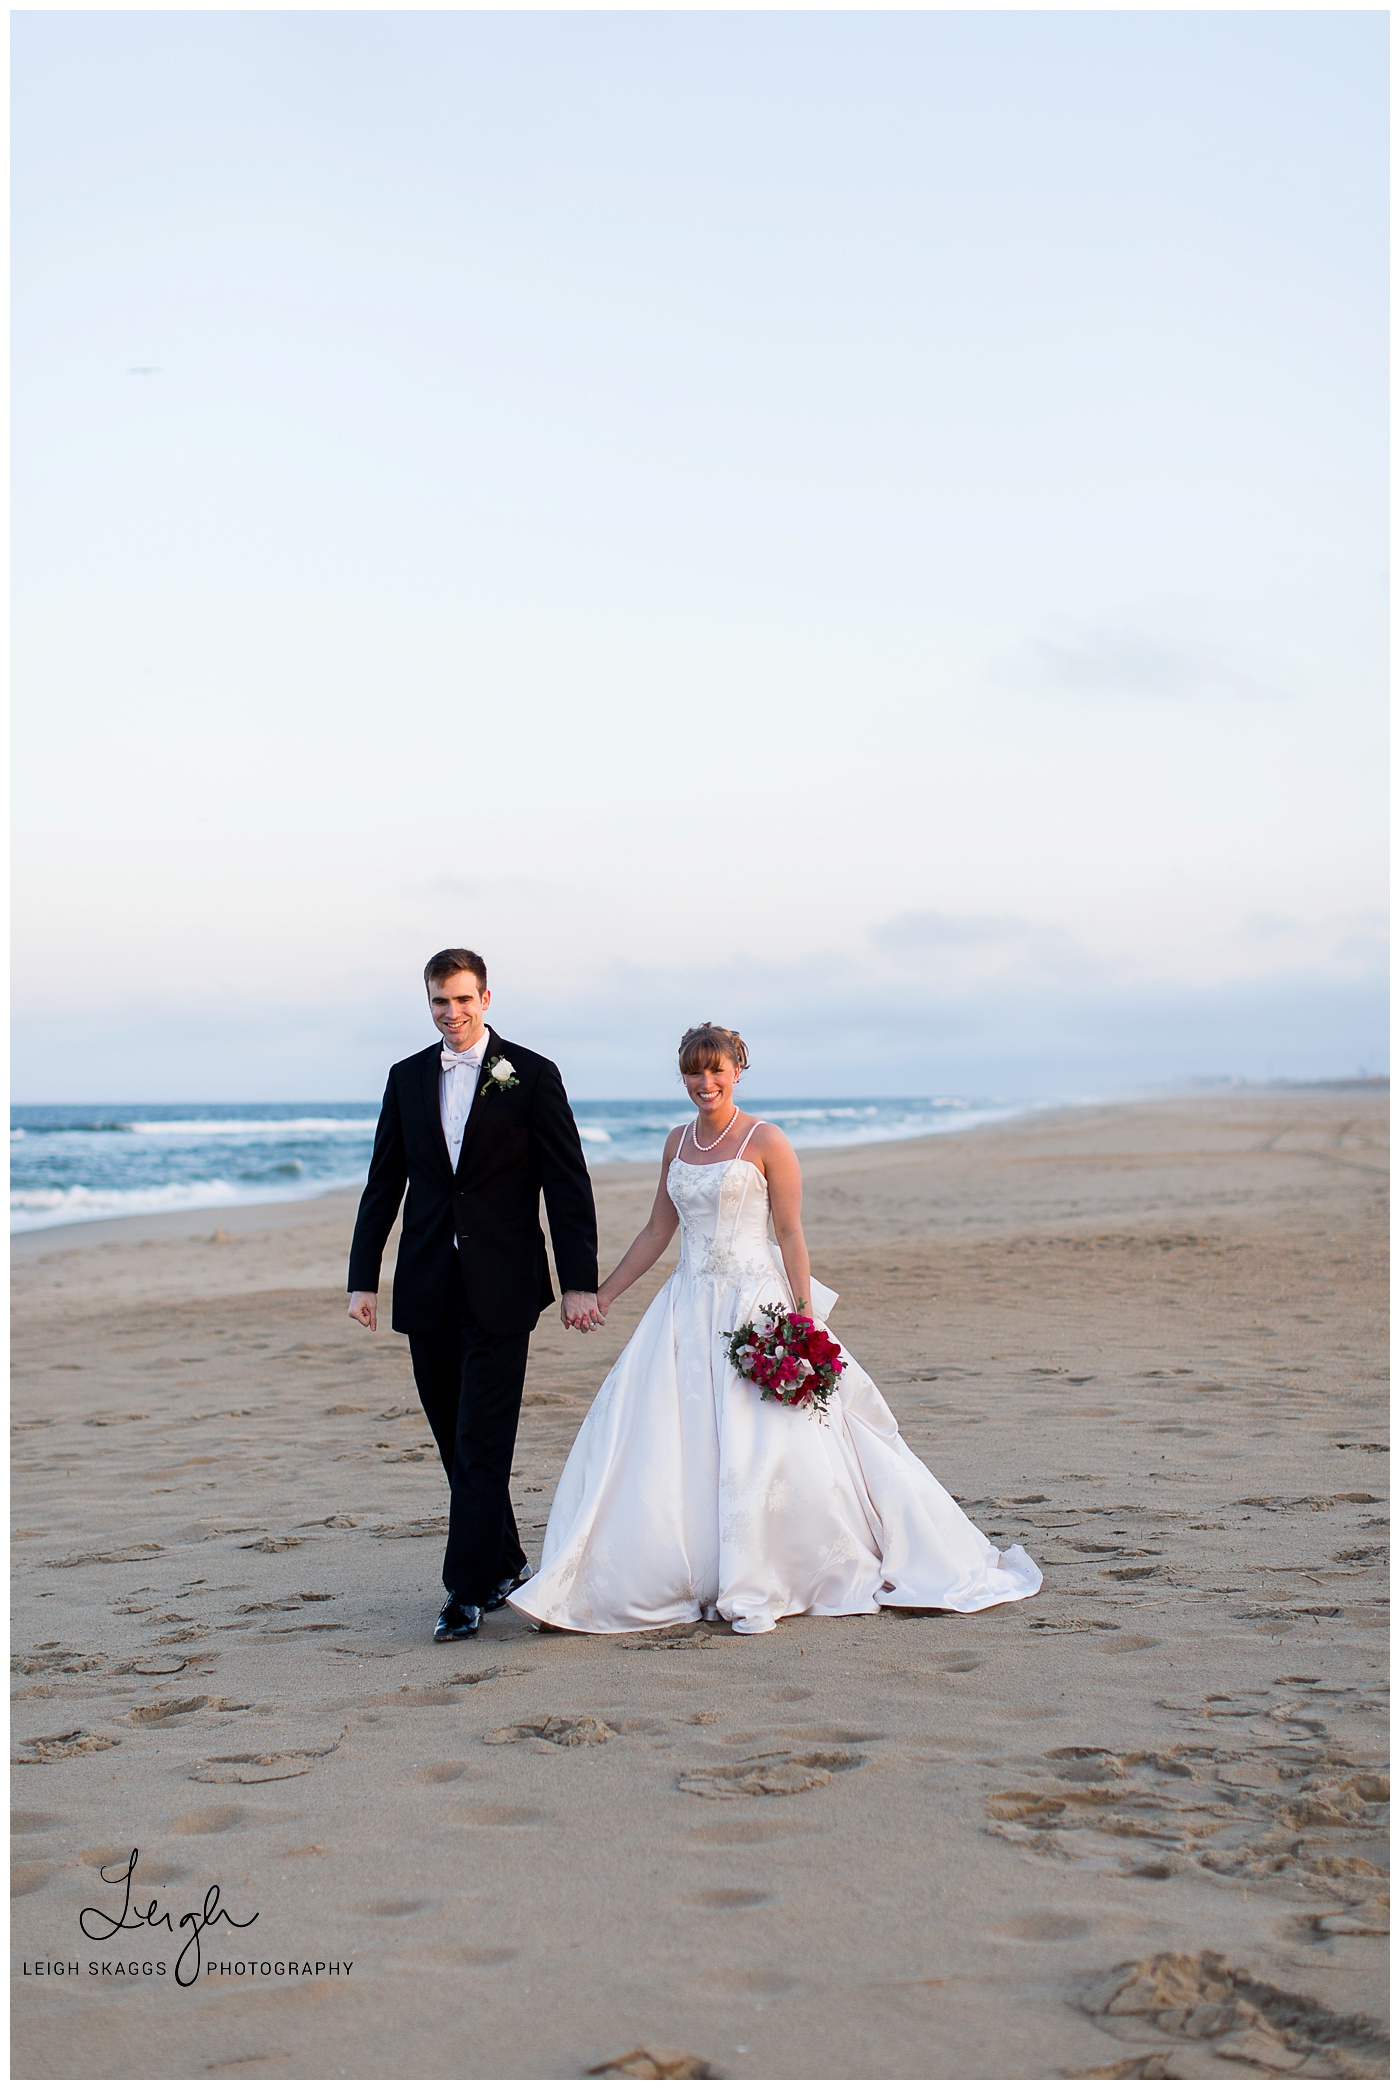 Colleen & David | Shifting Sands Wedding